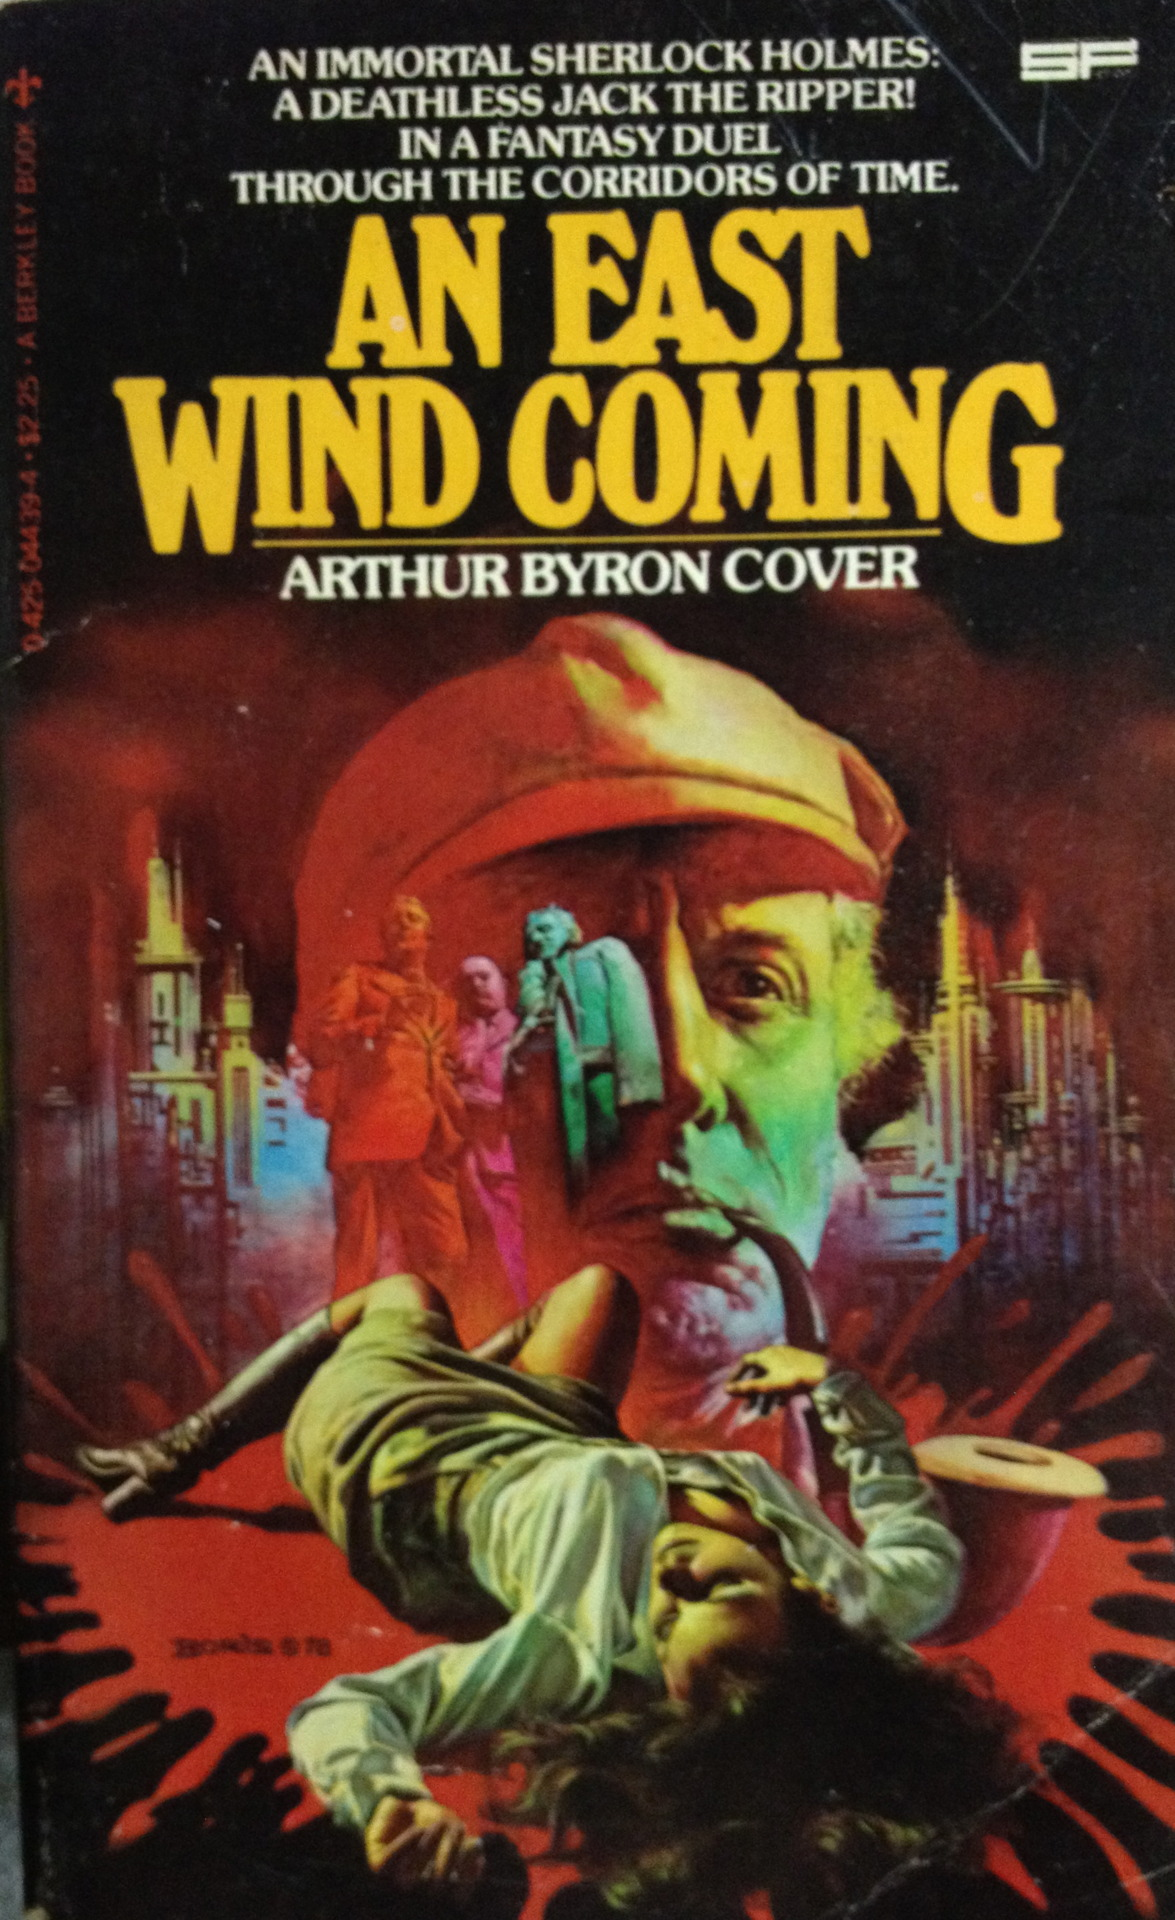 "Arthur Byron Cover wrote some cracked science fiction novellas in the 1970s, as part of the "" Weird Heroes "" and  Harlan Ellison' s "" Dangerous Visions "" series. I used to own a copy of Cover's ""The Platypus of Doom and Other Nihilists,"" a mass market paperback that is out of print and  as of February 2012 sells for $65 to $100 . But this one has survived on my shelf since high school: ""An East Wind Coming"" is somewhat more easy to get and here is the premise, Sherlock Holmes vs. Jack the Ripper:  It was two million years in the future and they were immortal — Holmes, Watson, all the Great Ones. With nothing to master but limitless Time. But that was before the killing began, bfore the world's greatest sleuth discovered that history's most heinous criminal was also ""alive"" and steeping the East End of the Eternal City in the blood of goddesses.       [Originally posted on my discontinued This Old Book Tumblr.]"